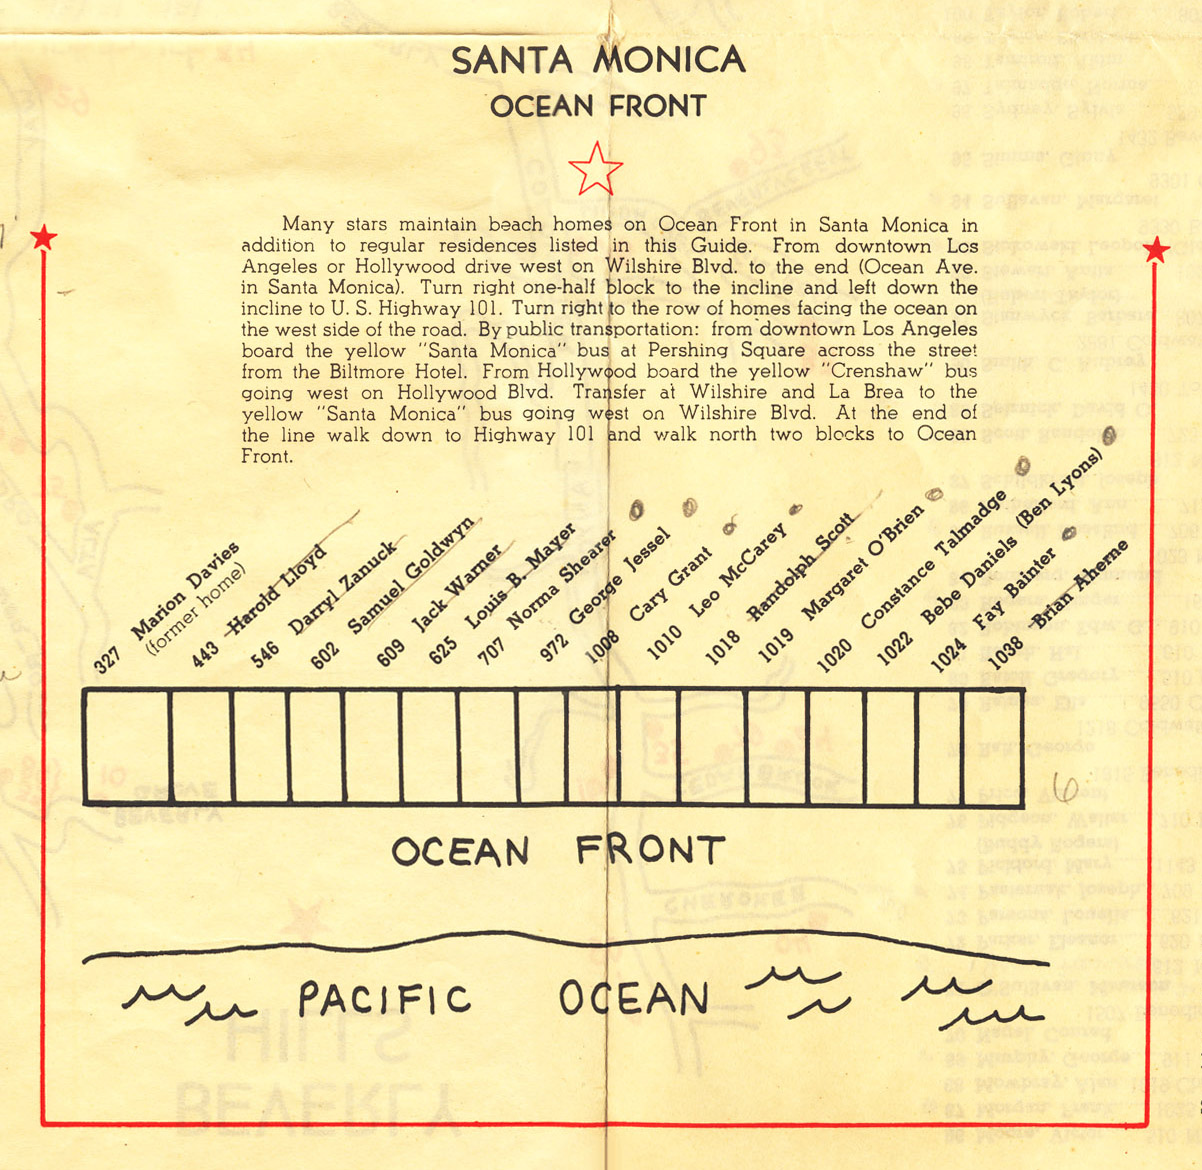 Santamonica beach map